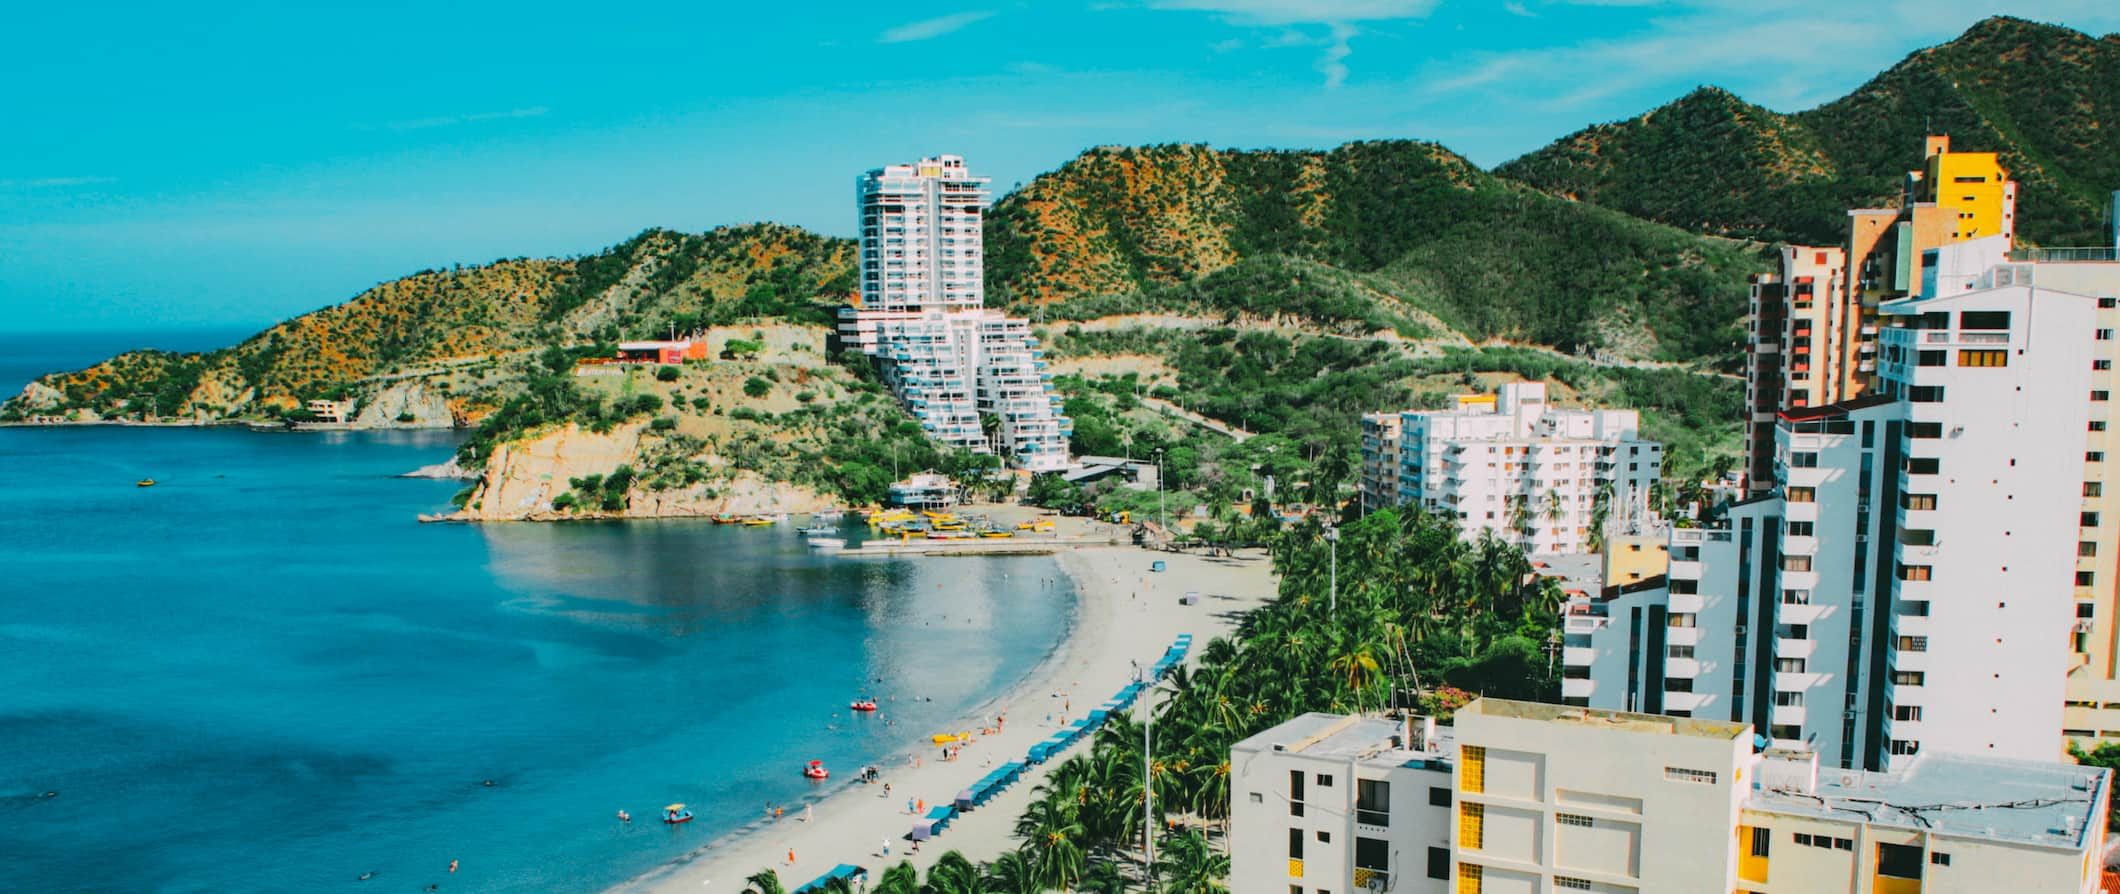 A areal view of the beach front in Santa Marta Colombia